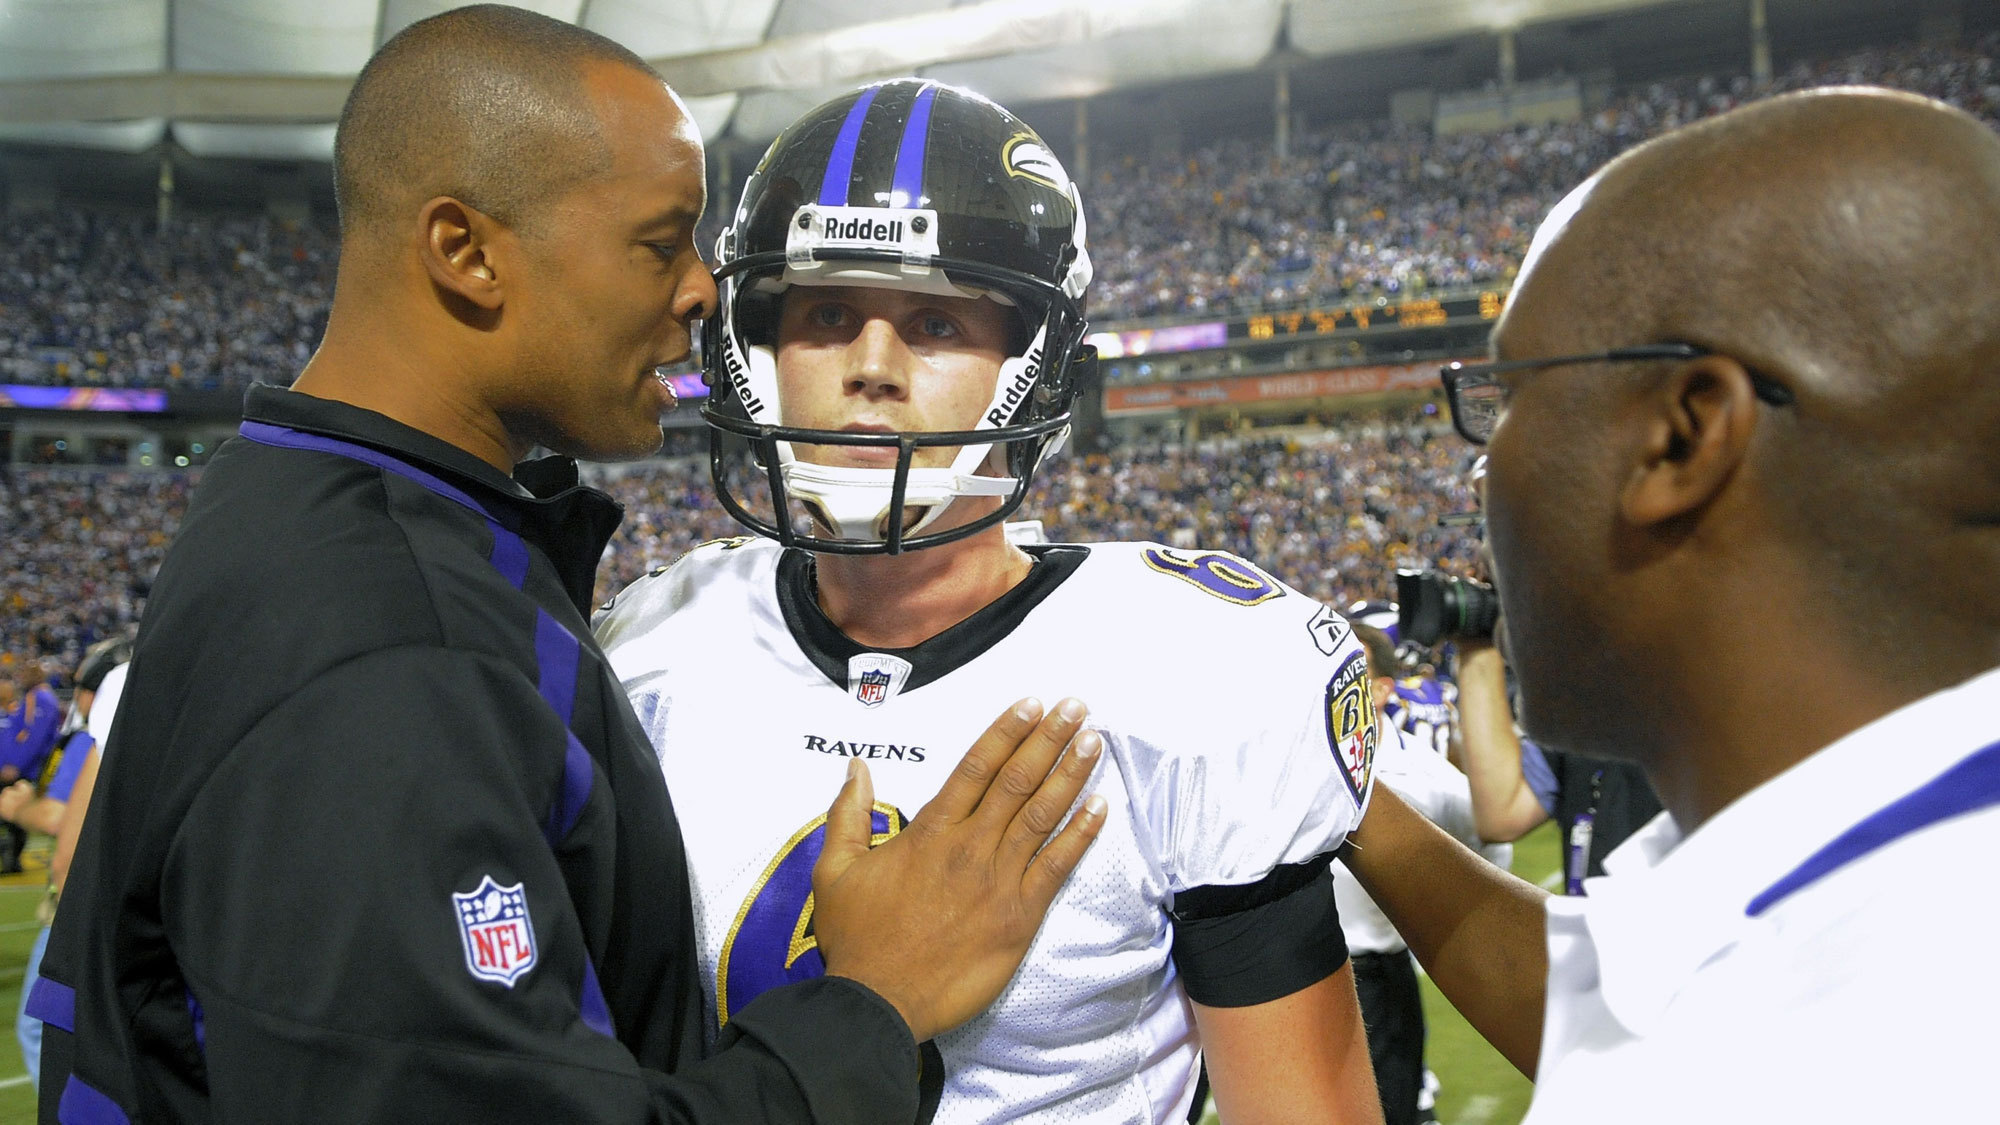 Ravens kickers have often become successful, but not always in …